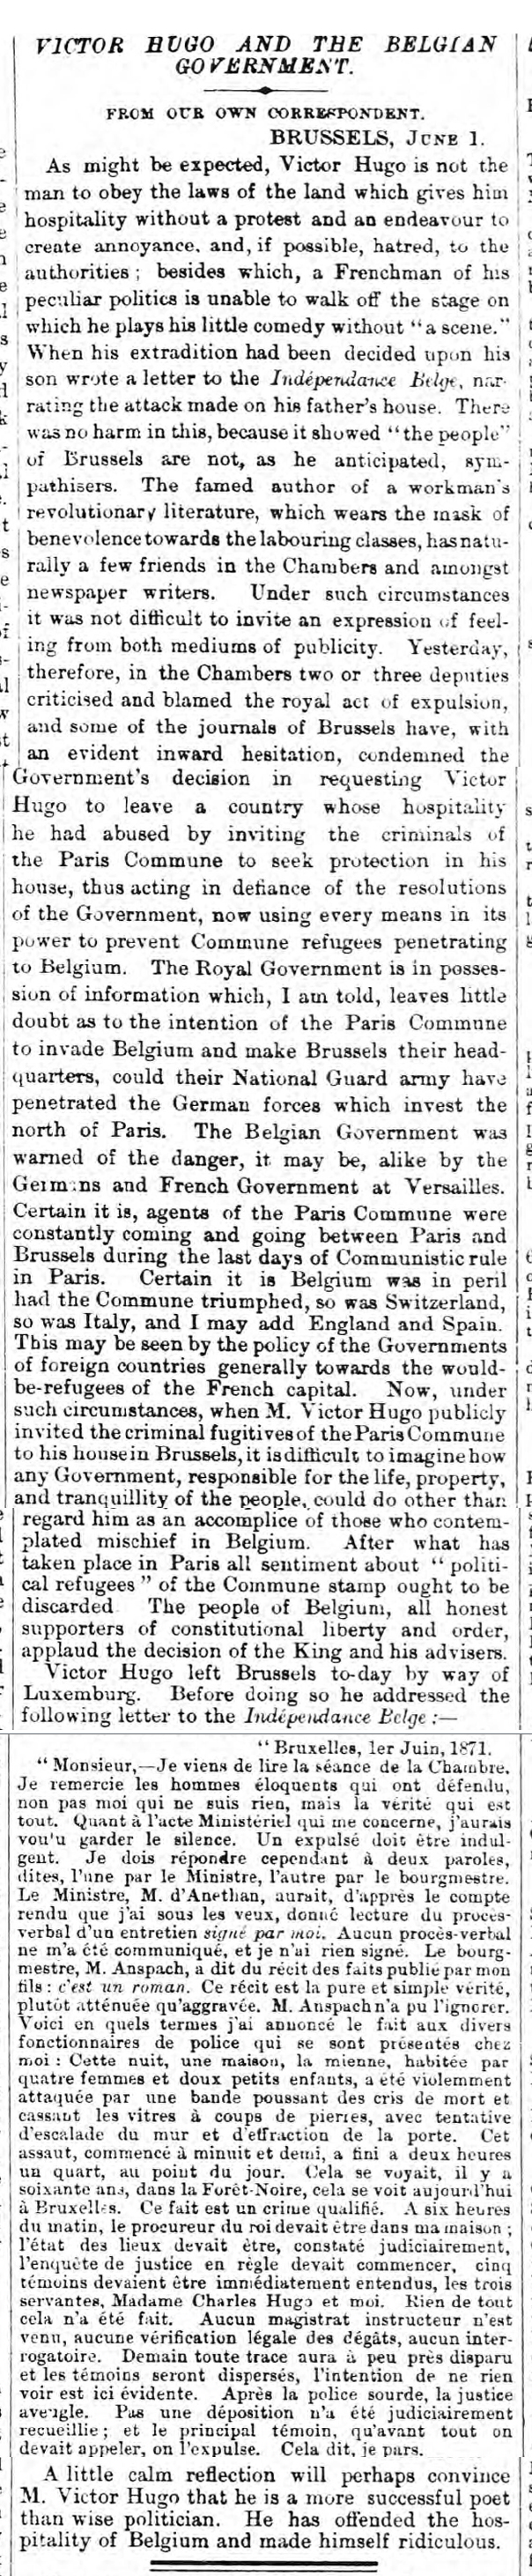 historical newspaper story about the fall of the paris